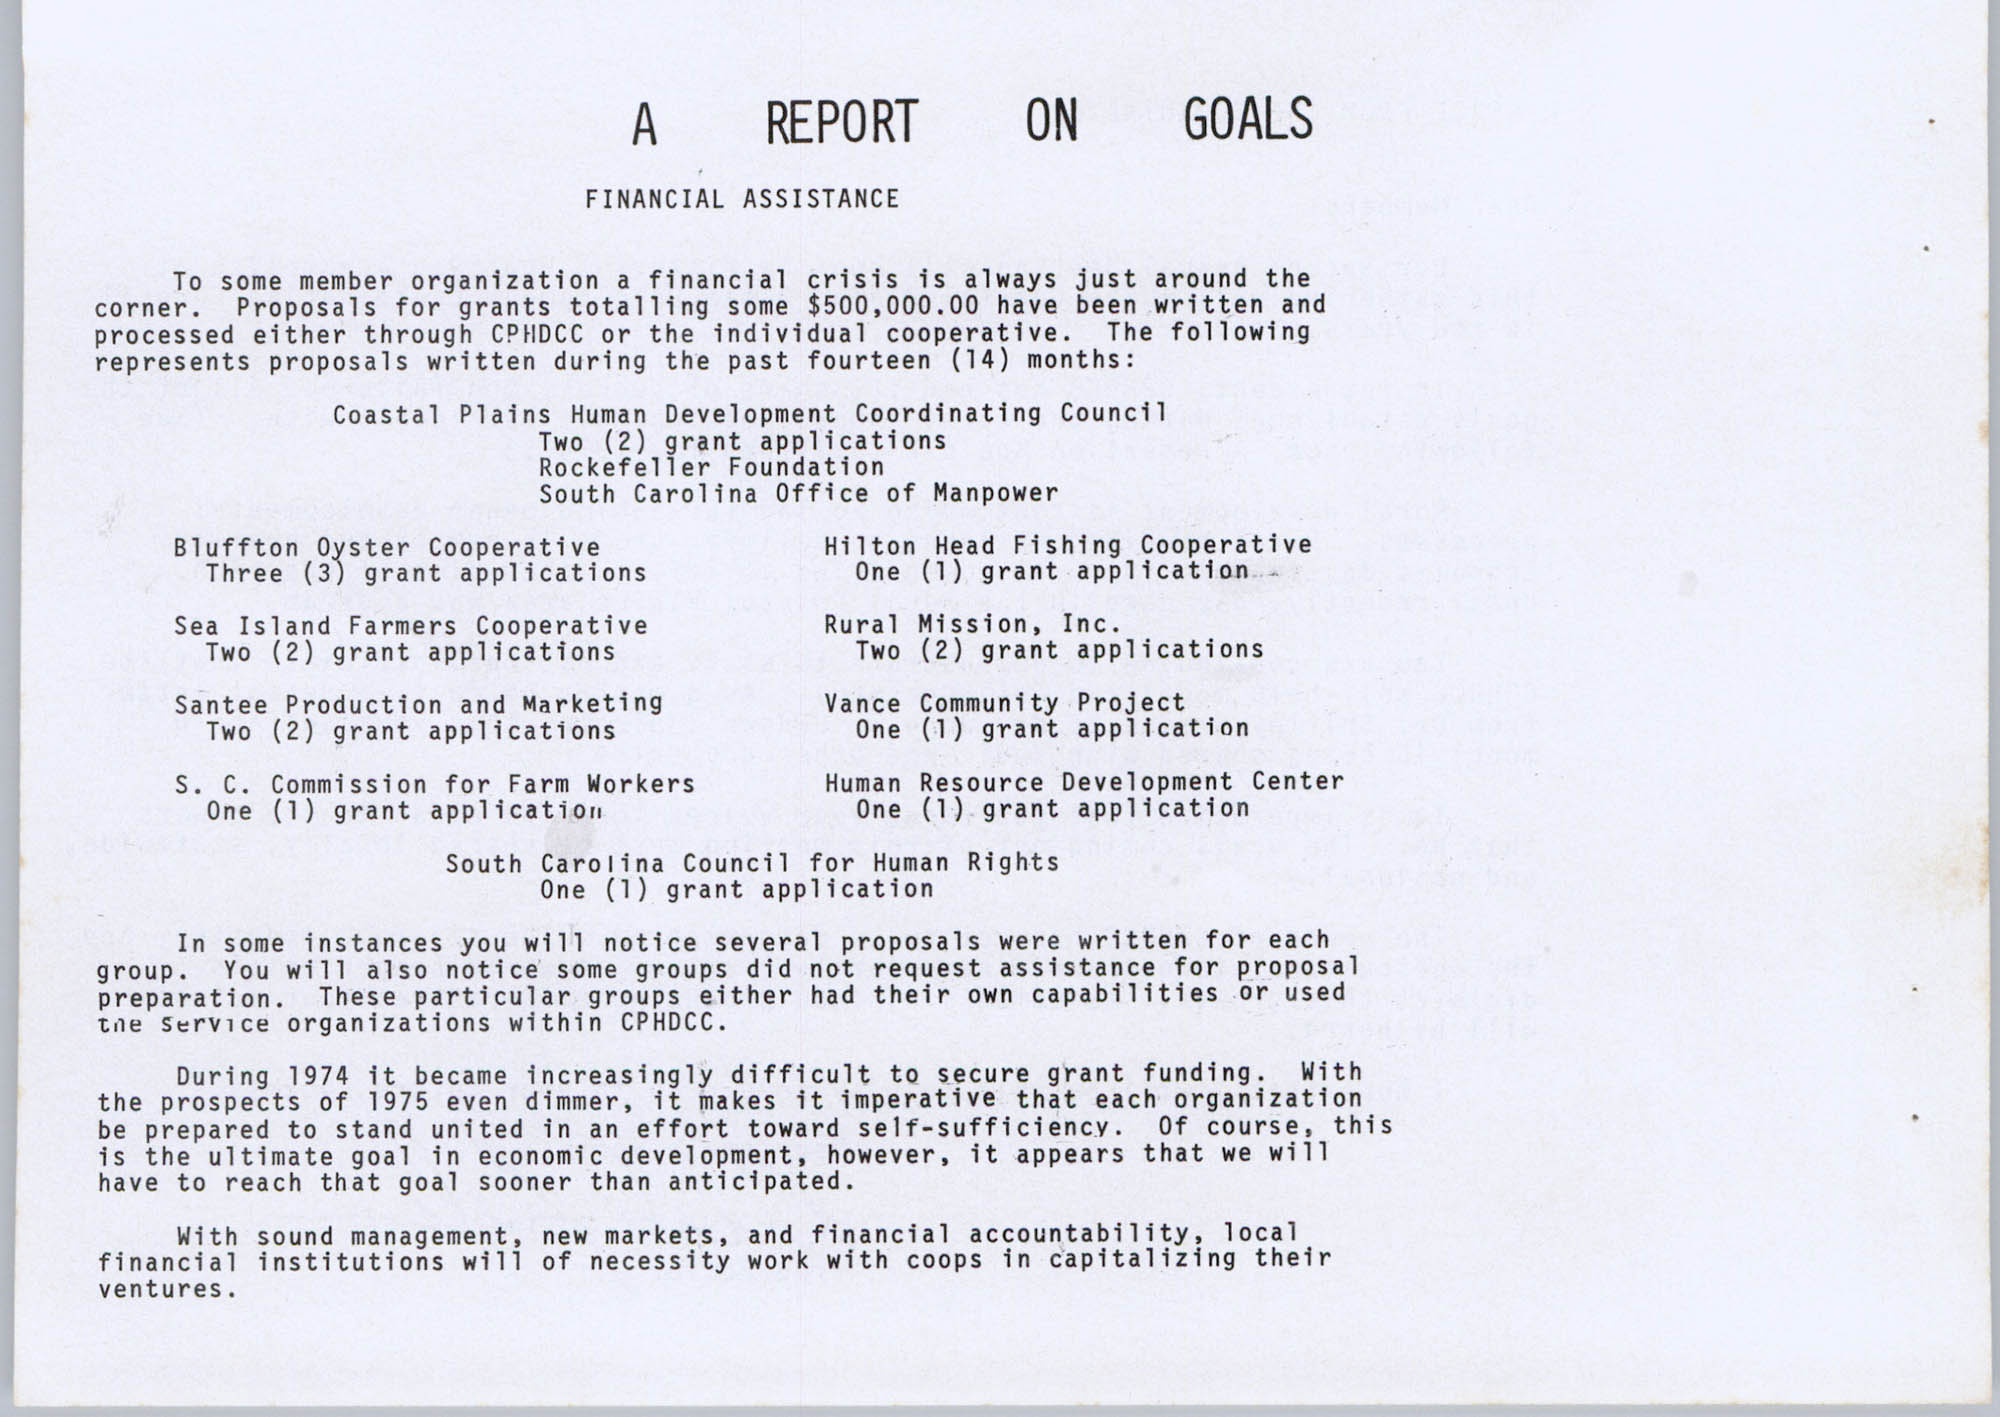 Coastal Plains Human Development Coordinating Council, 1974 Annual Report, Page 4